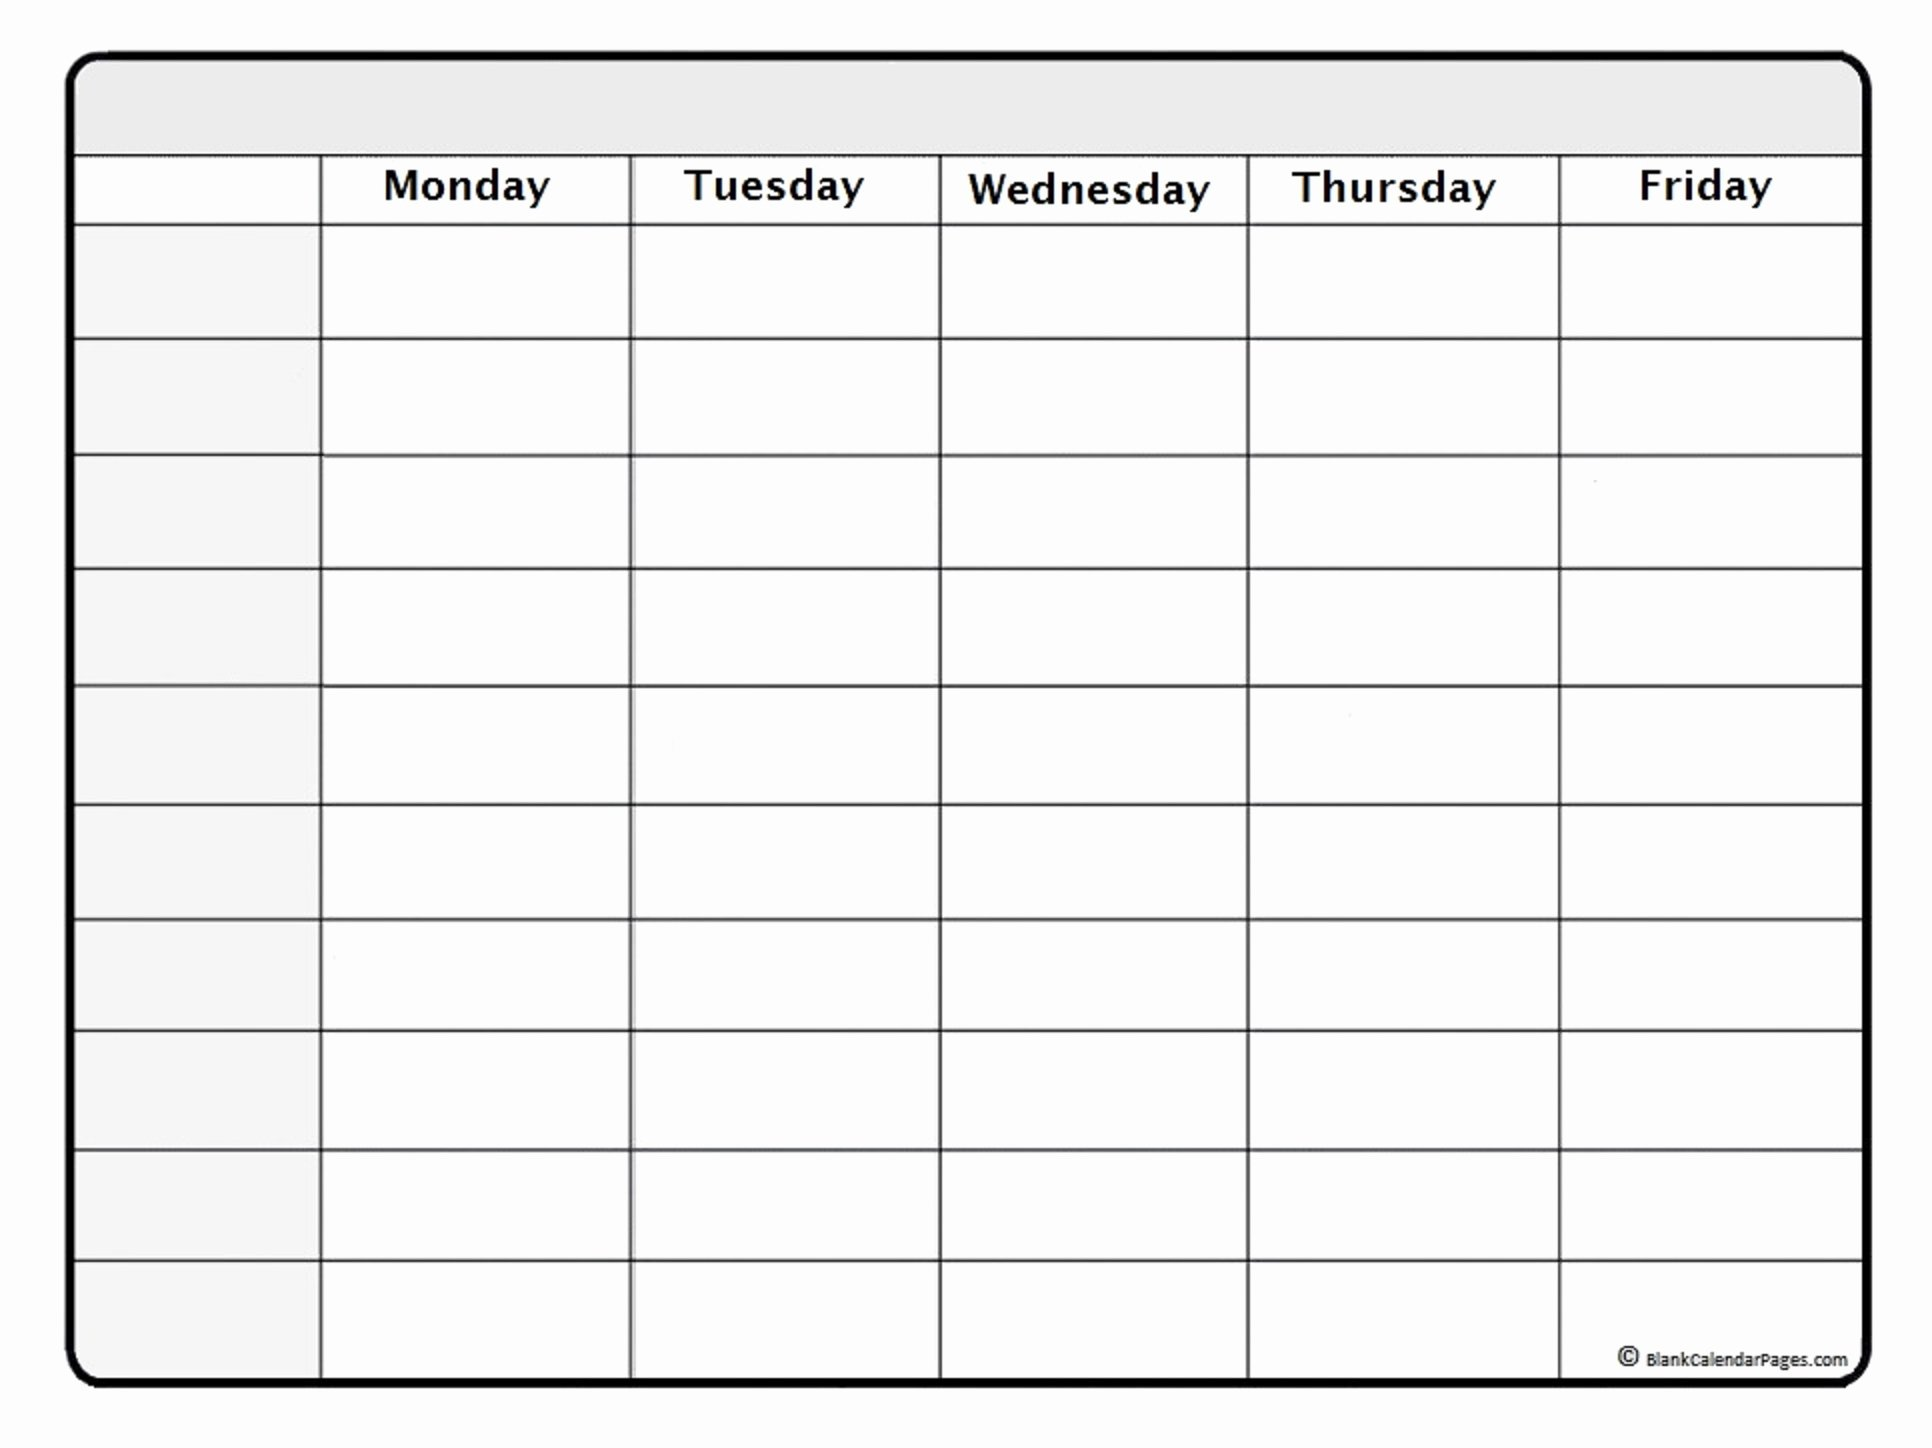 Printable Blank Weekly Calendar New October 2019 Weekly Calendar